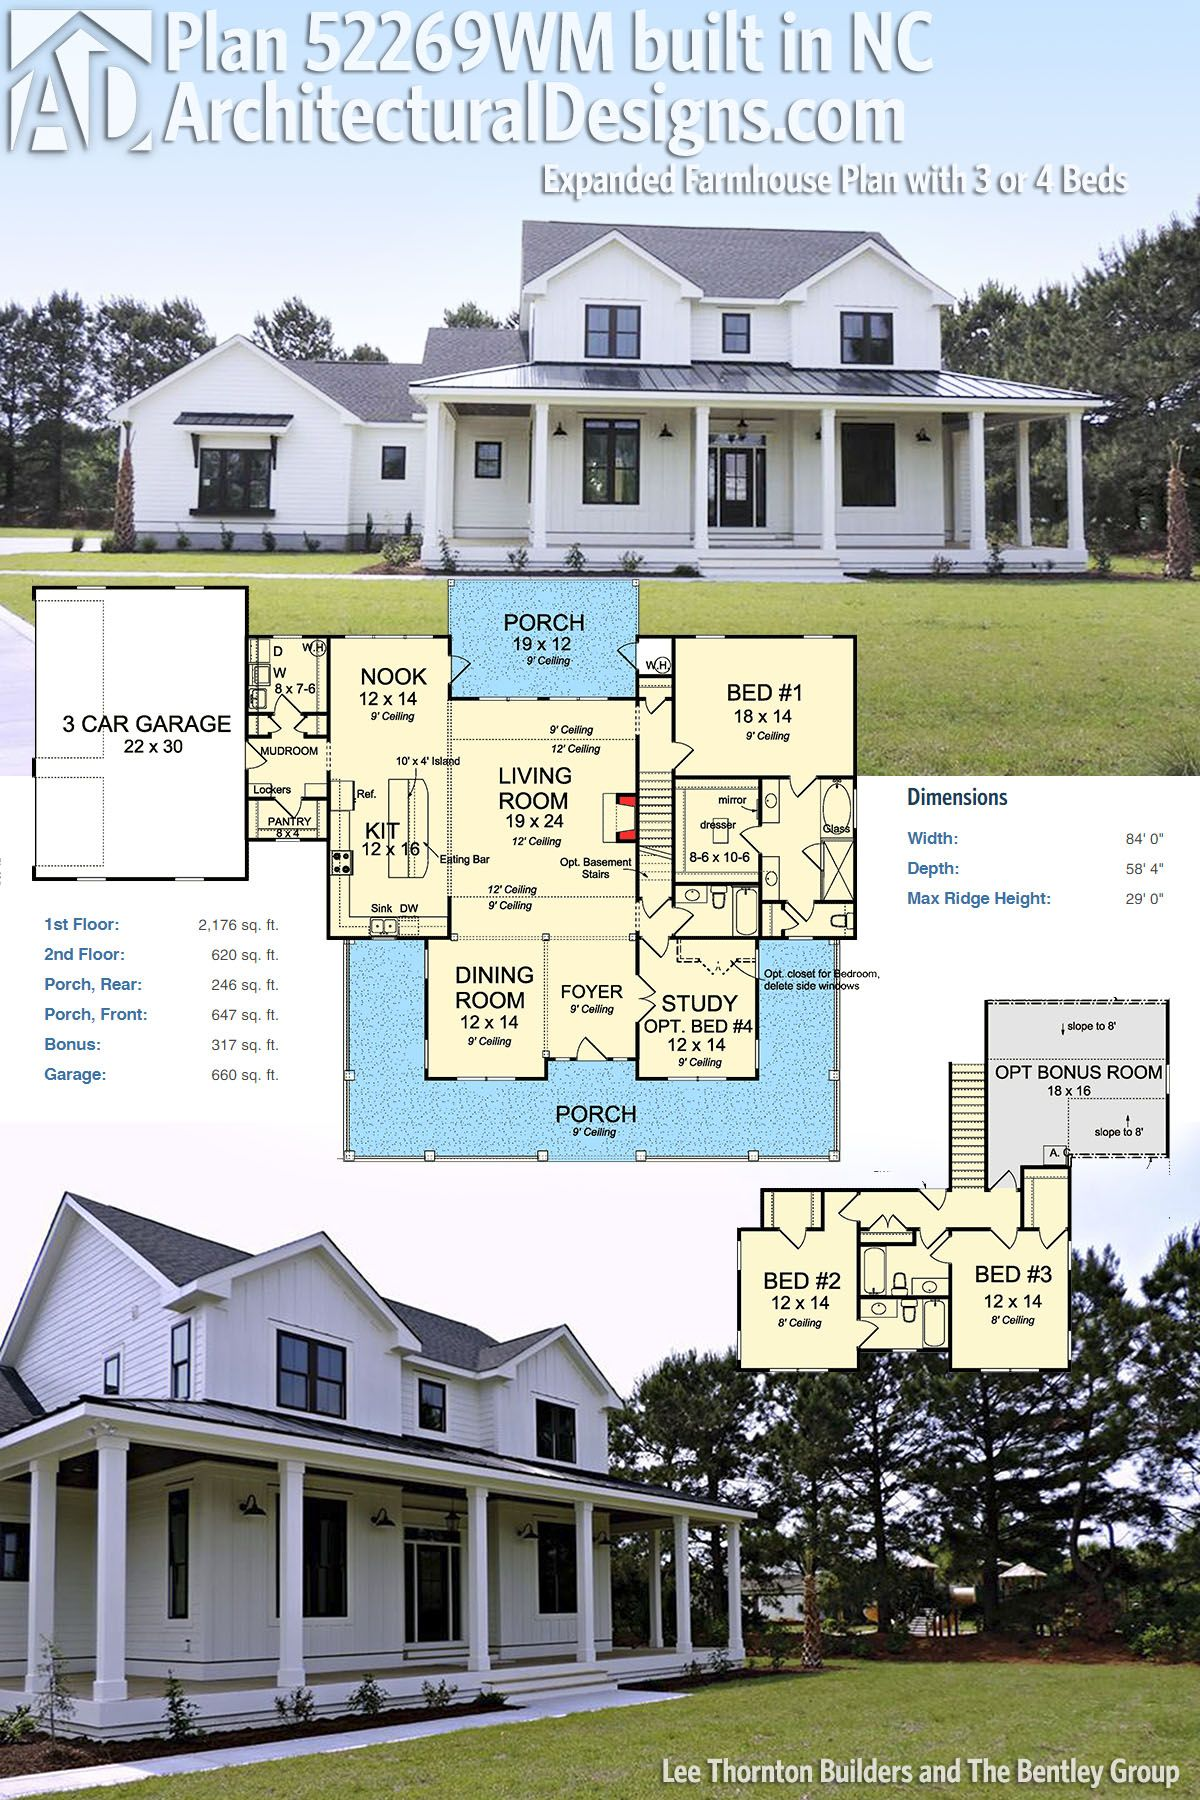 Architectural Designs Modern Farmhouse Plan 52269WM Was Stunningly Built In  North Carolina By Our Client,